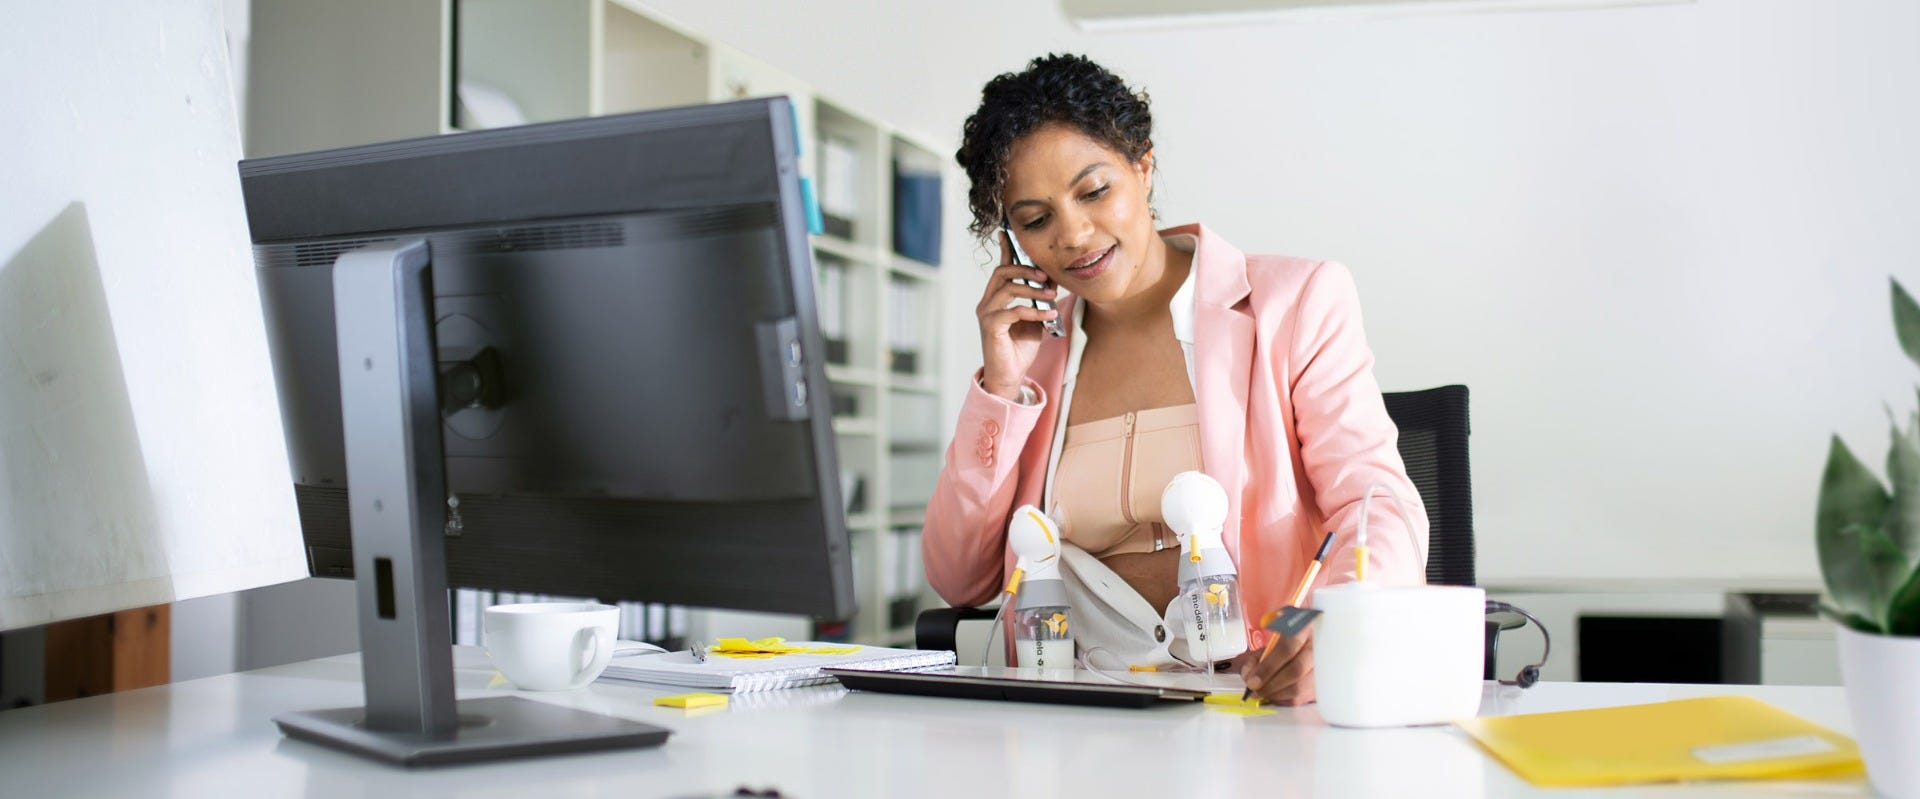 Woman cleaning breast pump shield in front of her laptop